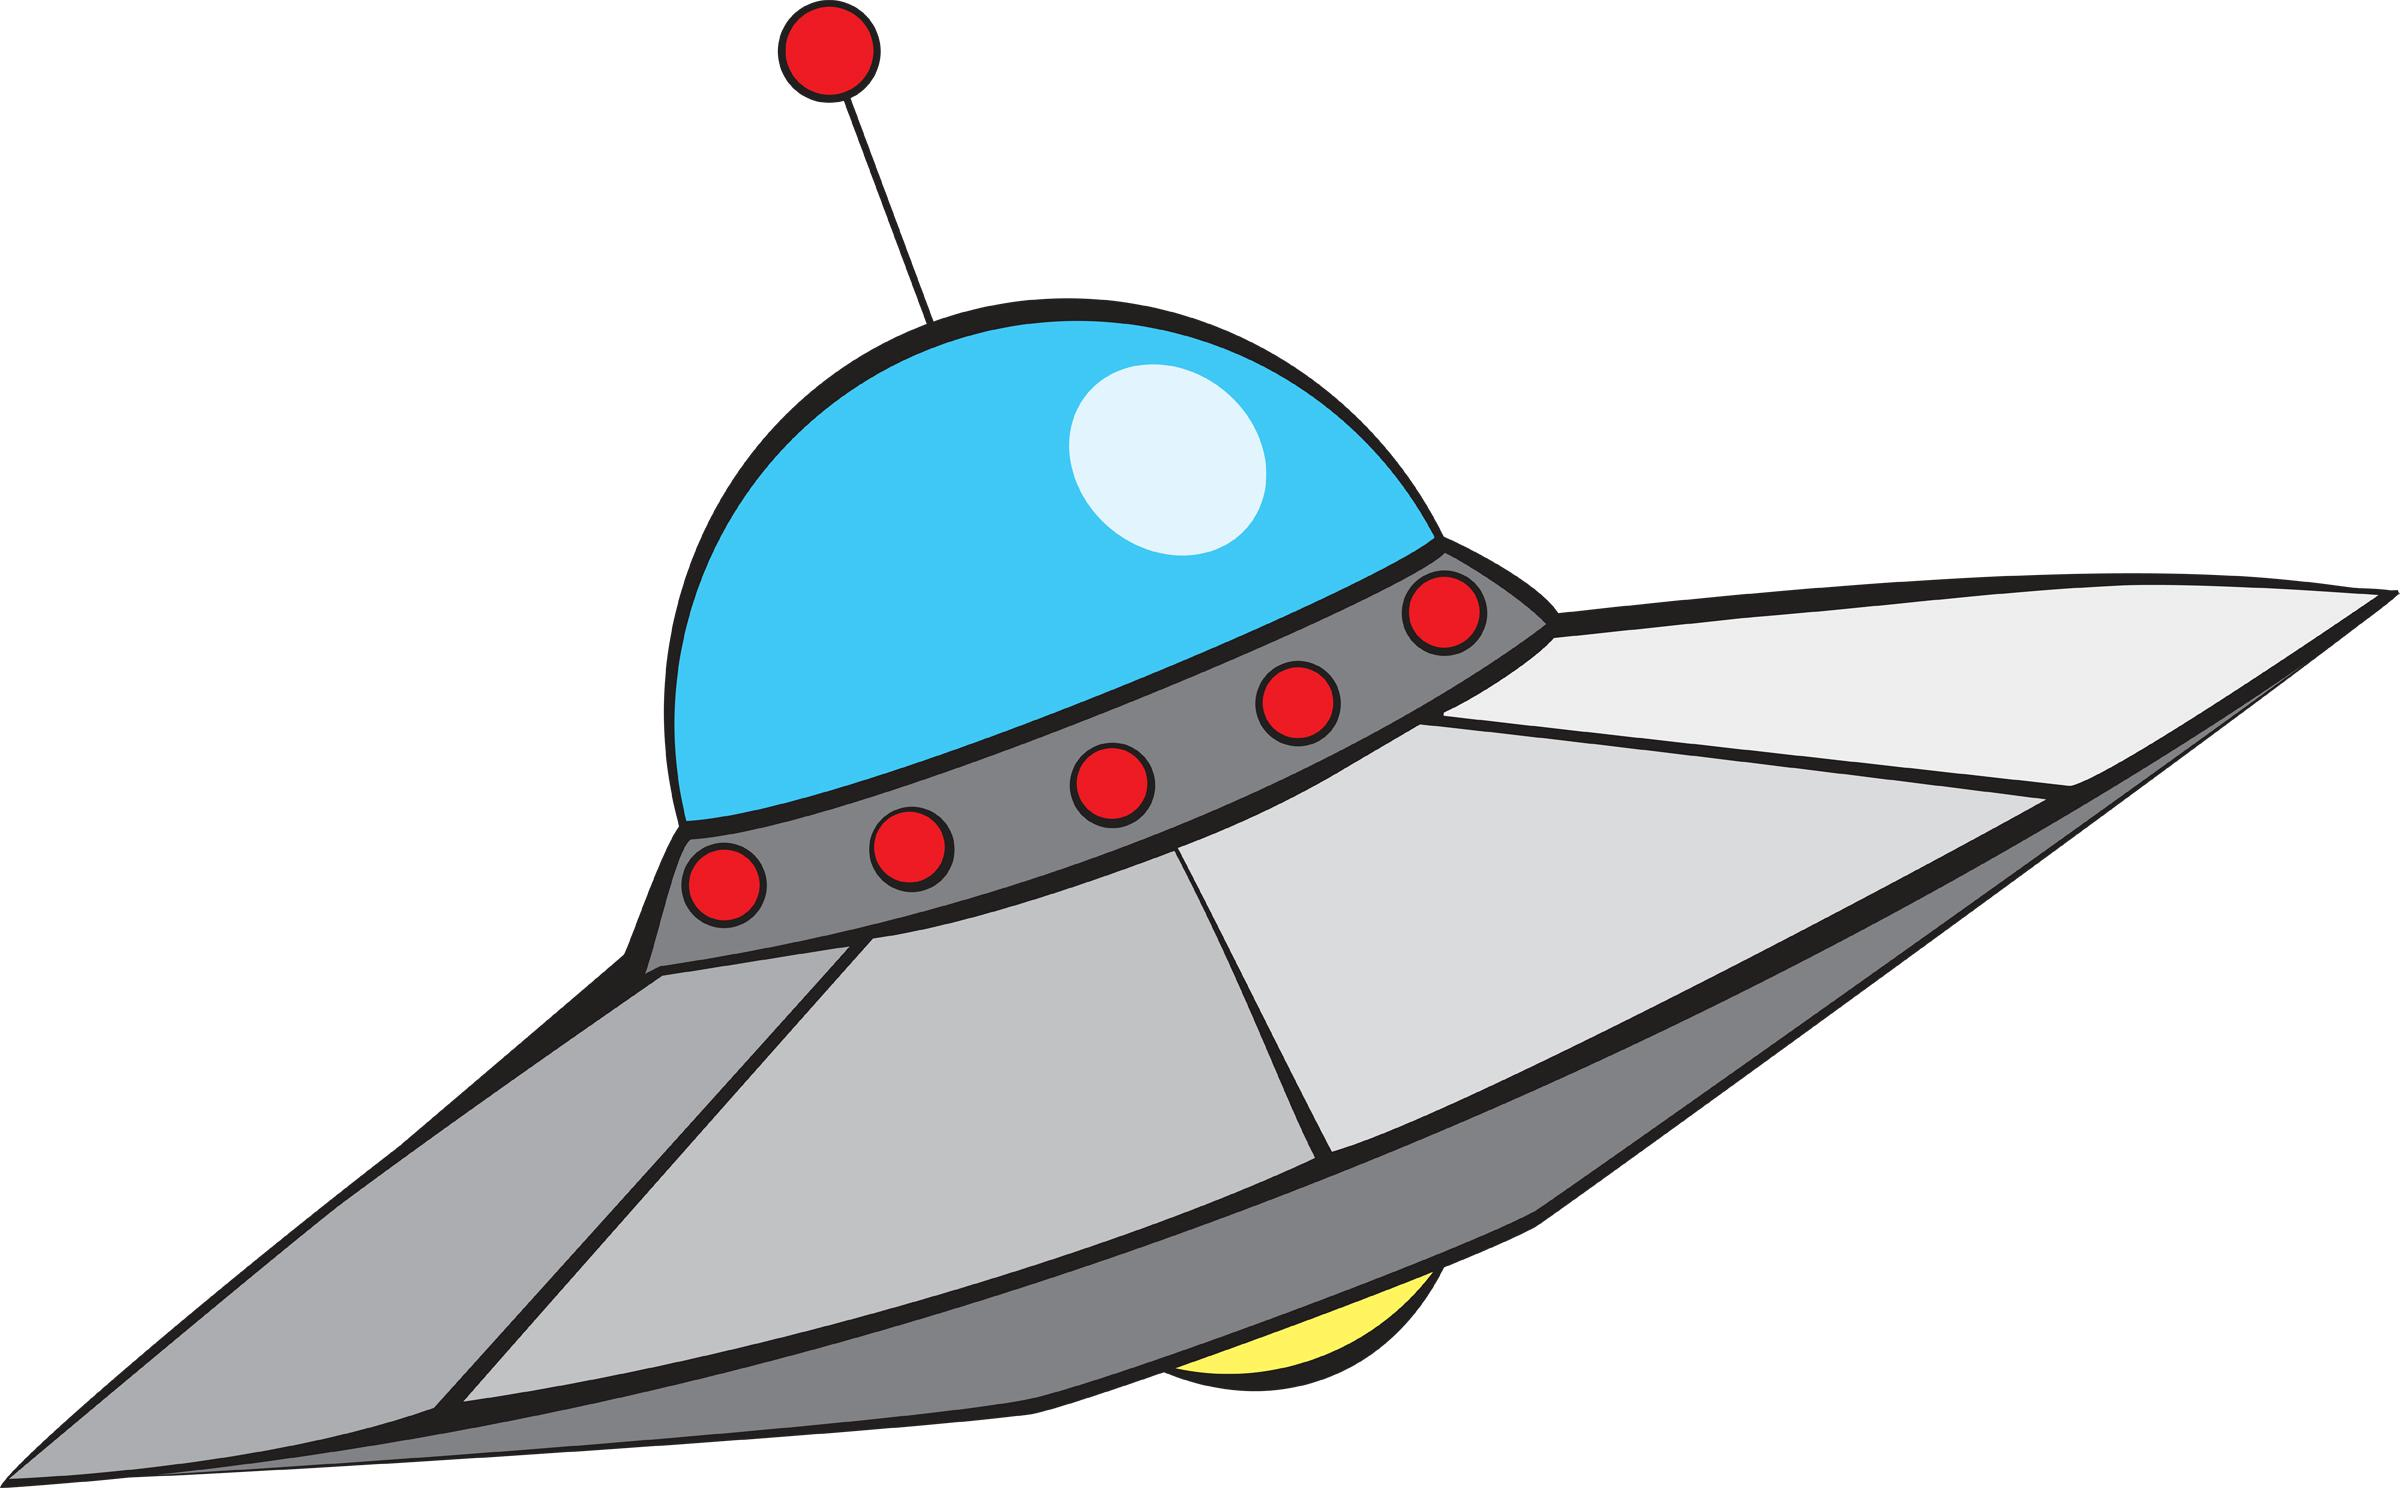 spaceship clipart for kids www imgkid com the image Spaceship Free Clipartdownlaod spaceship clipart free